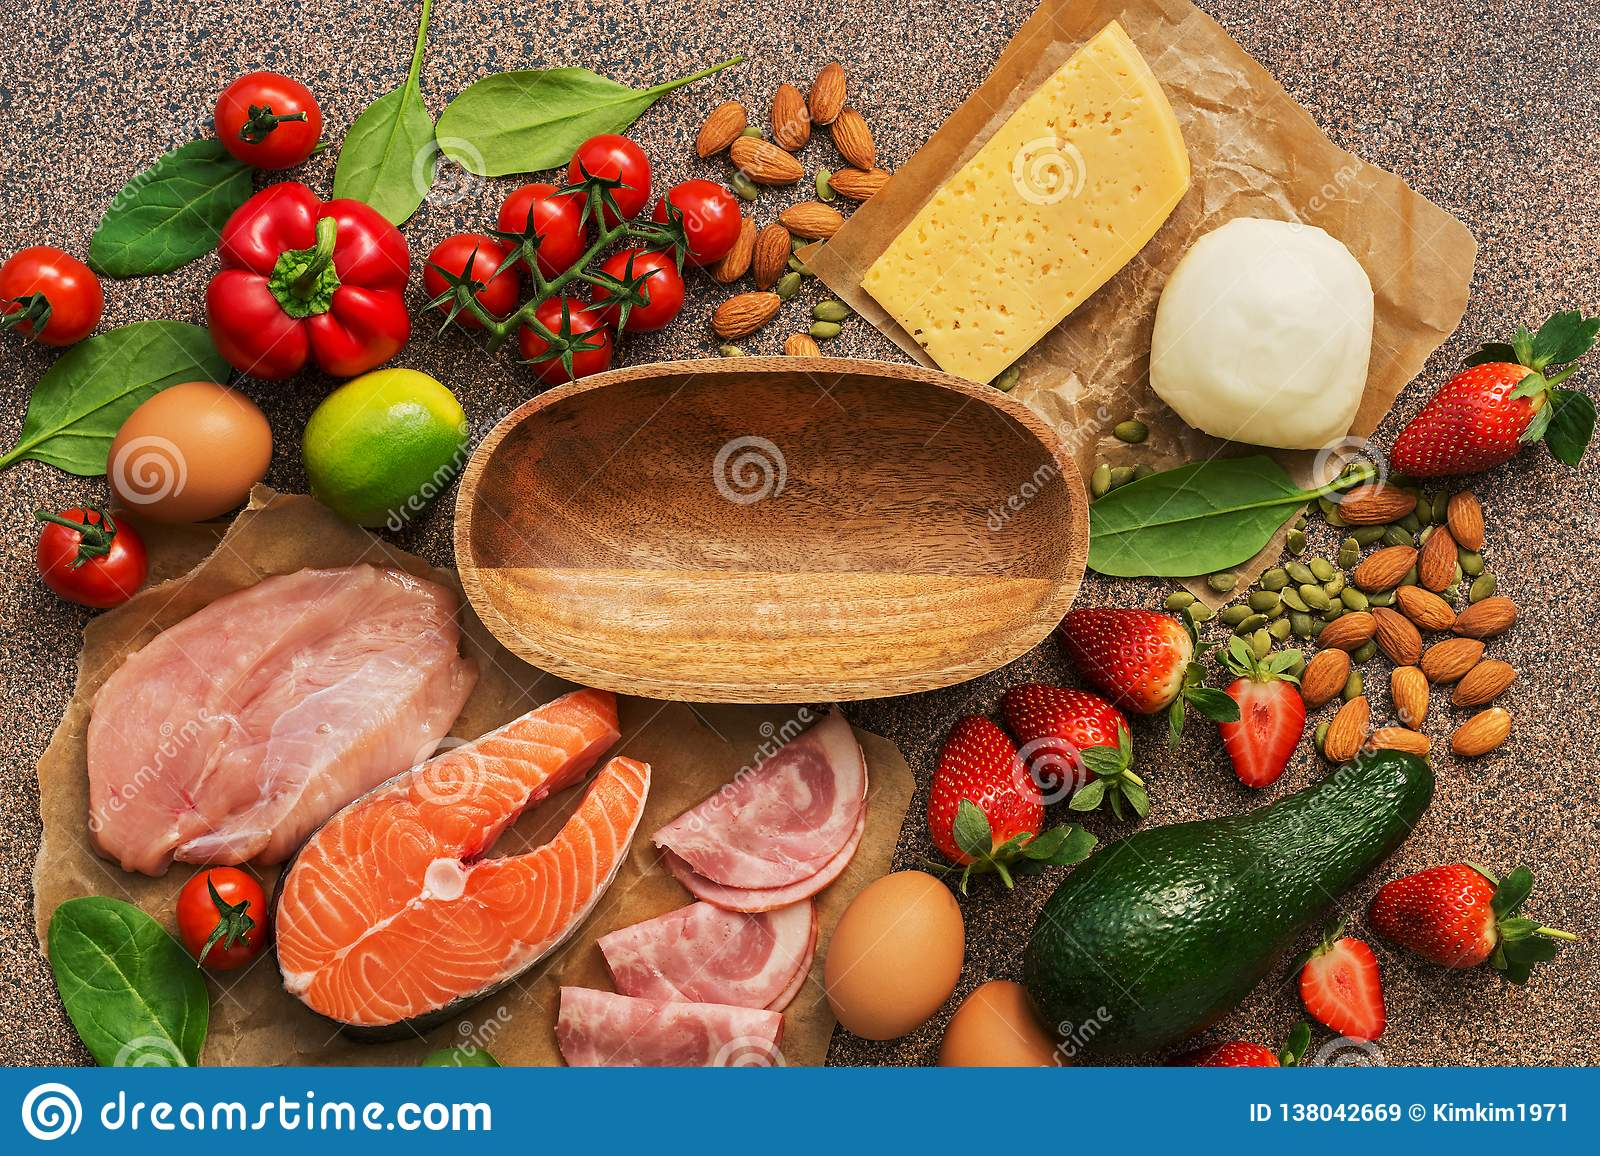 Keto diet concept.Healthy foods low in carbohydrates. Salmon, chicken, vegetables, strawberries, nuts, eggs and tomatoes, empty